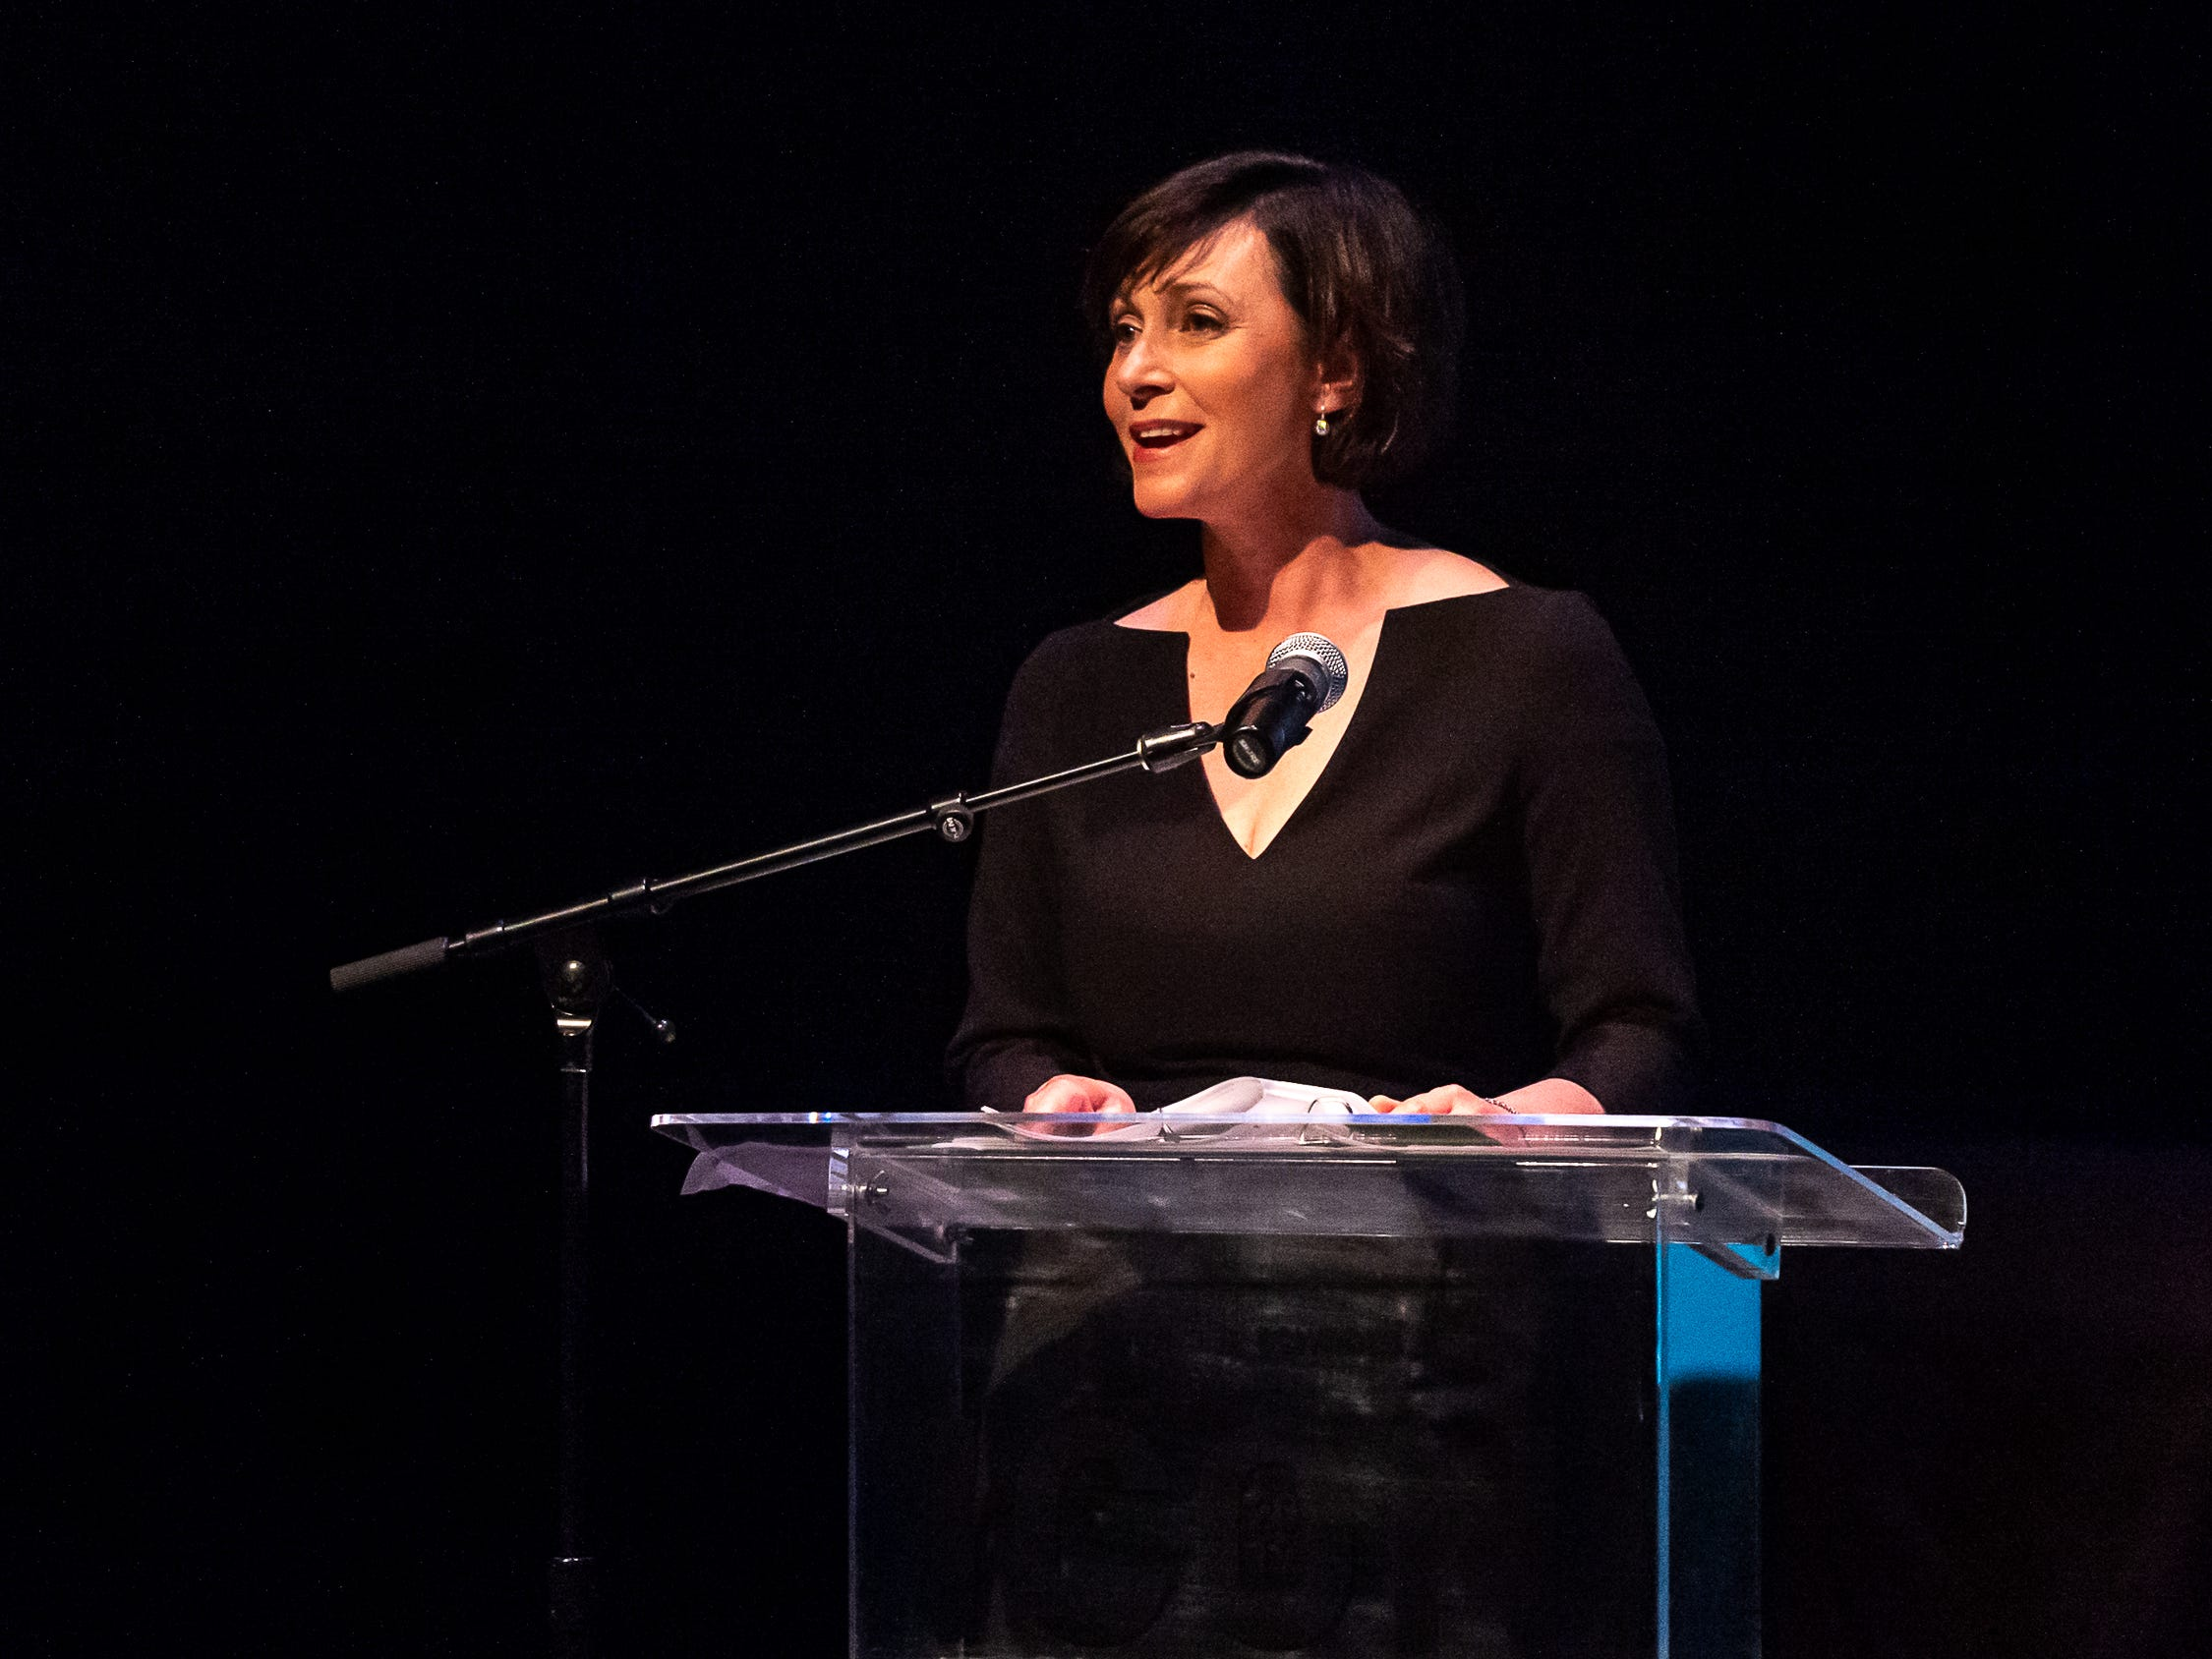 Kim Bishop speaking at The 2019 Icon Arts & Cultural Awards Gala honoring Acadiana's Legends. Thursday, April 11, 2019.